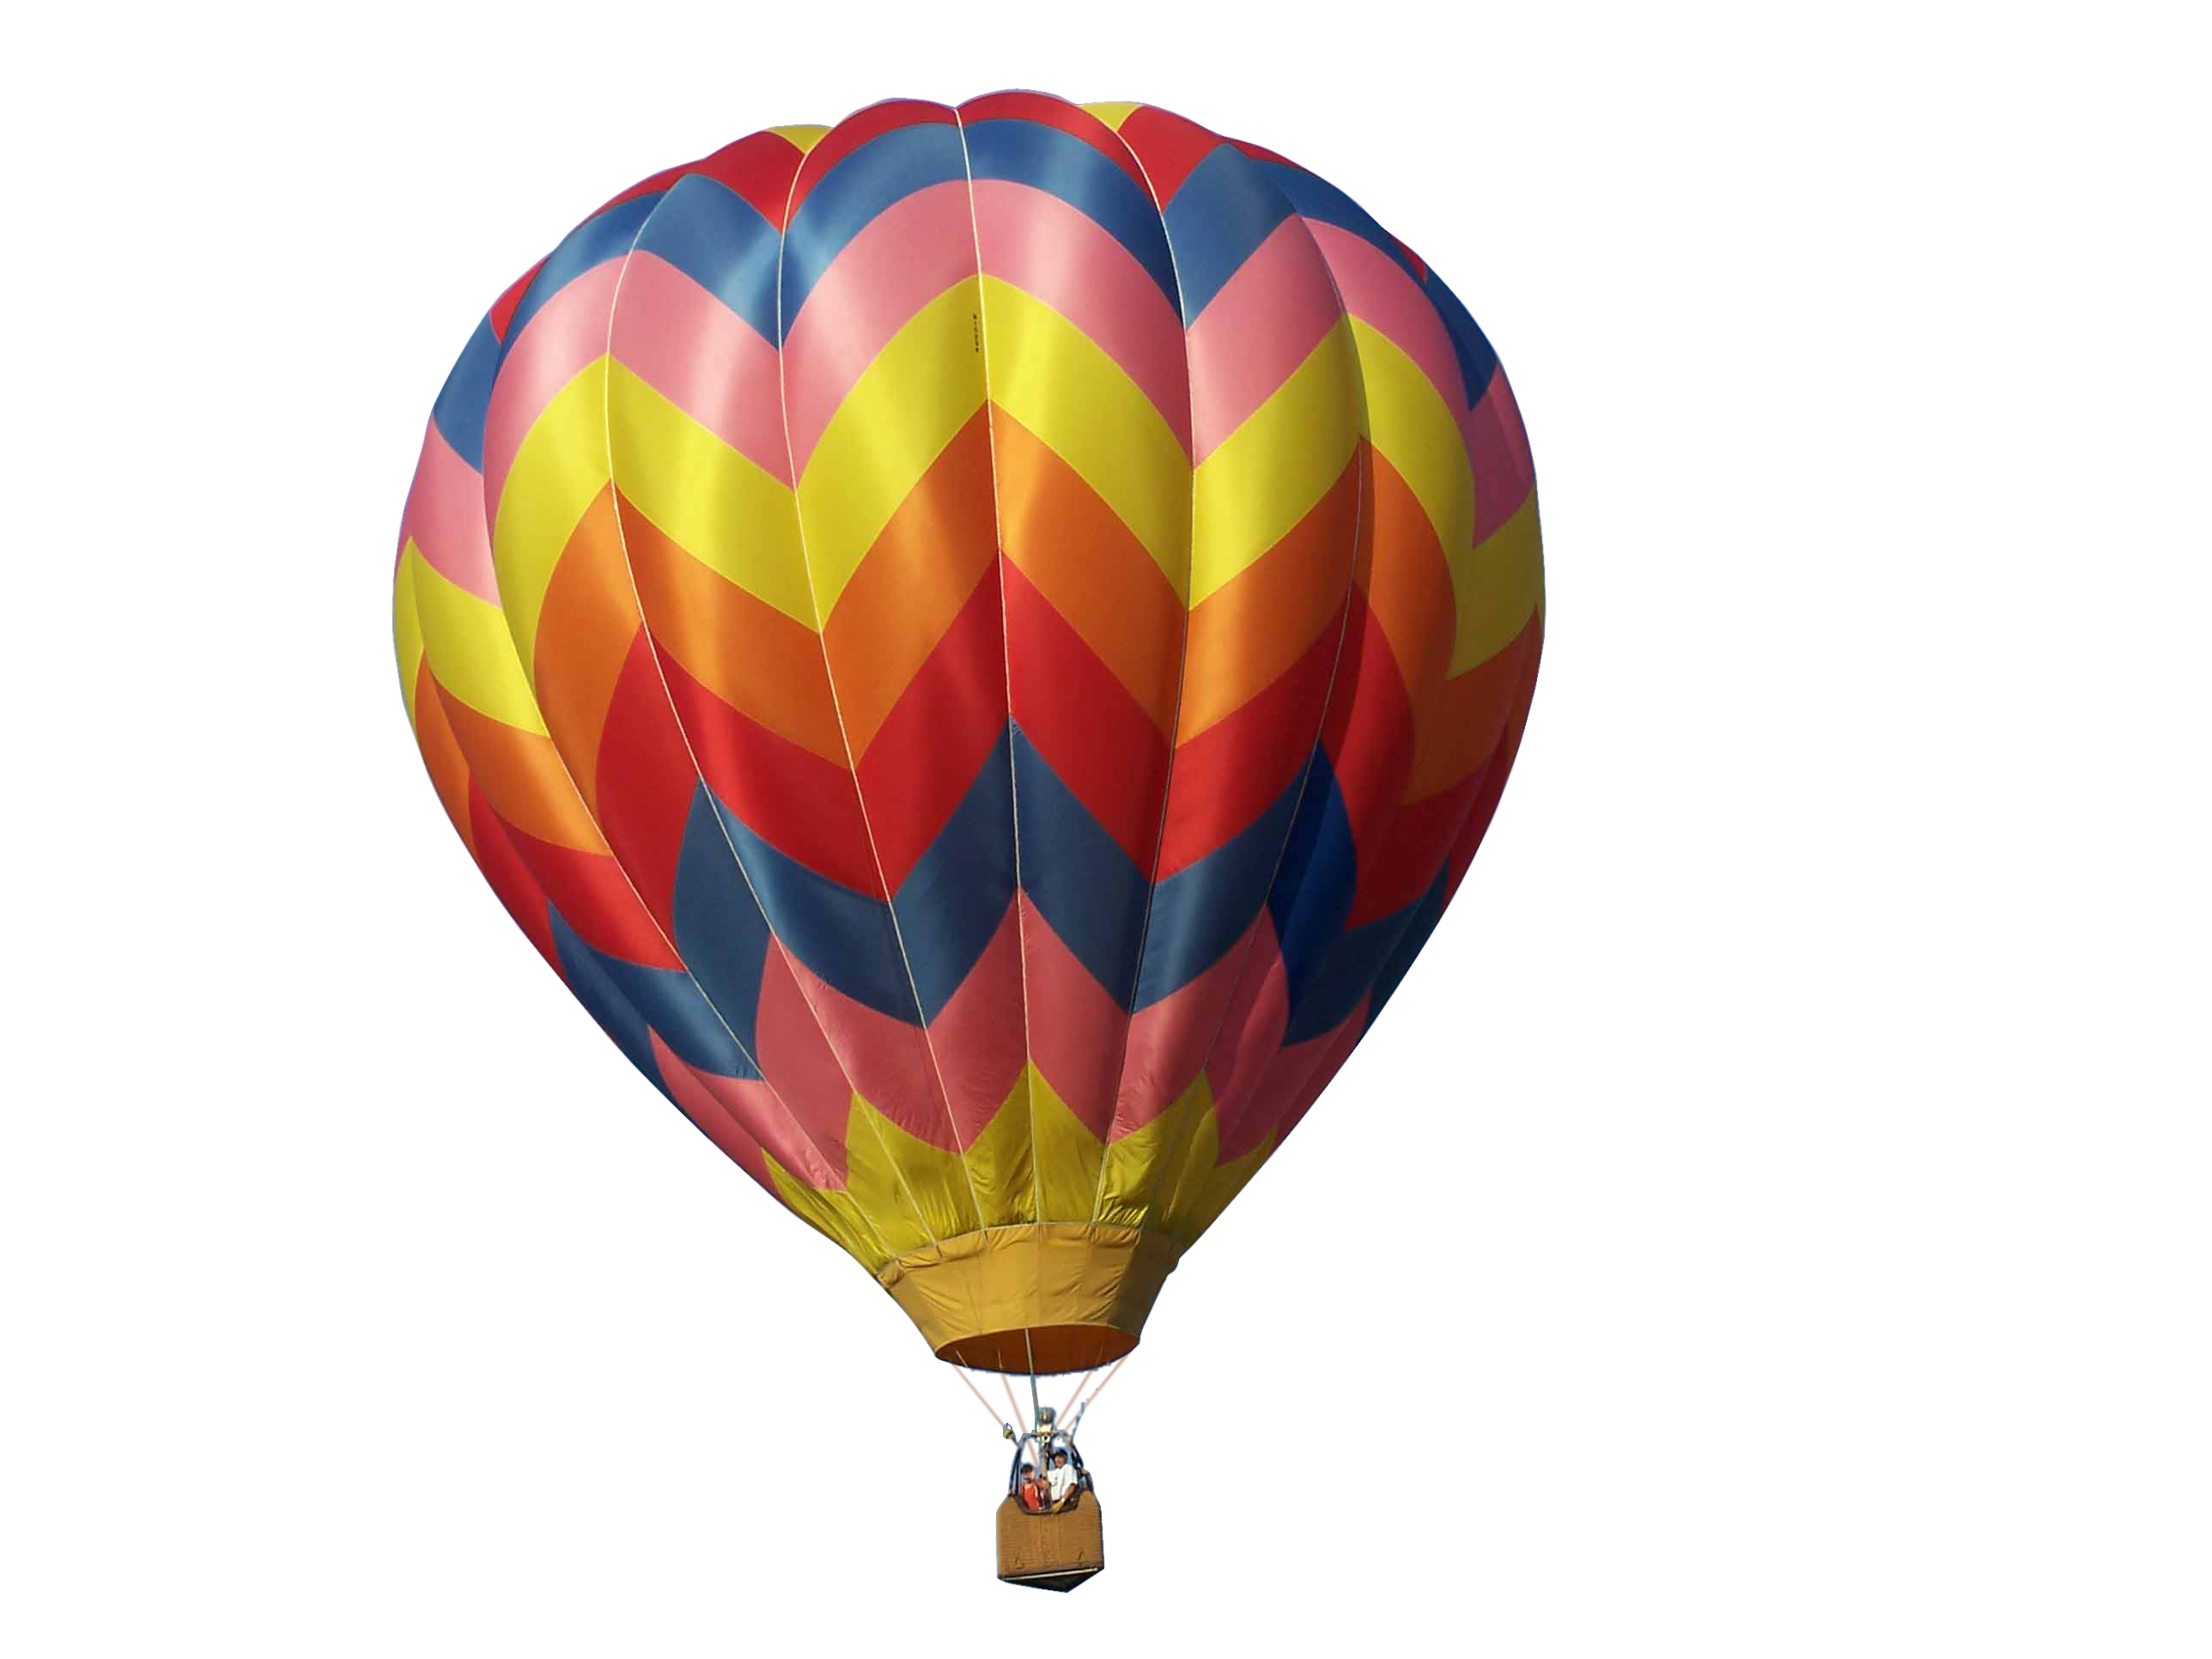 Gas Balloon PNG Transparent Gas Balloon.PNG Images..